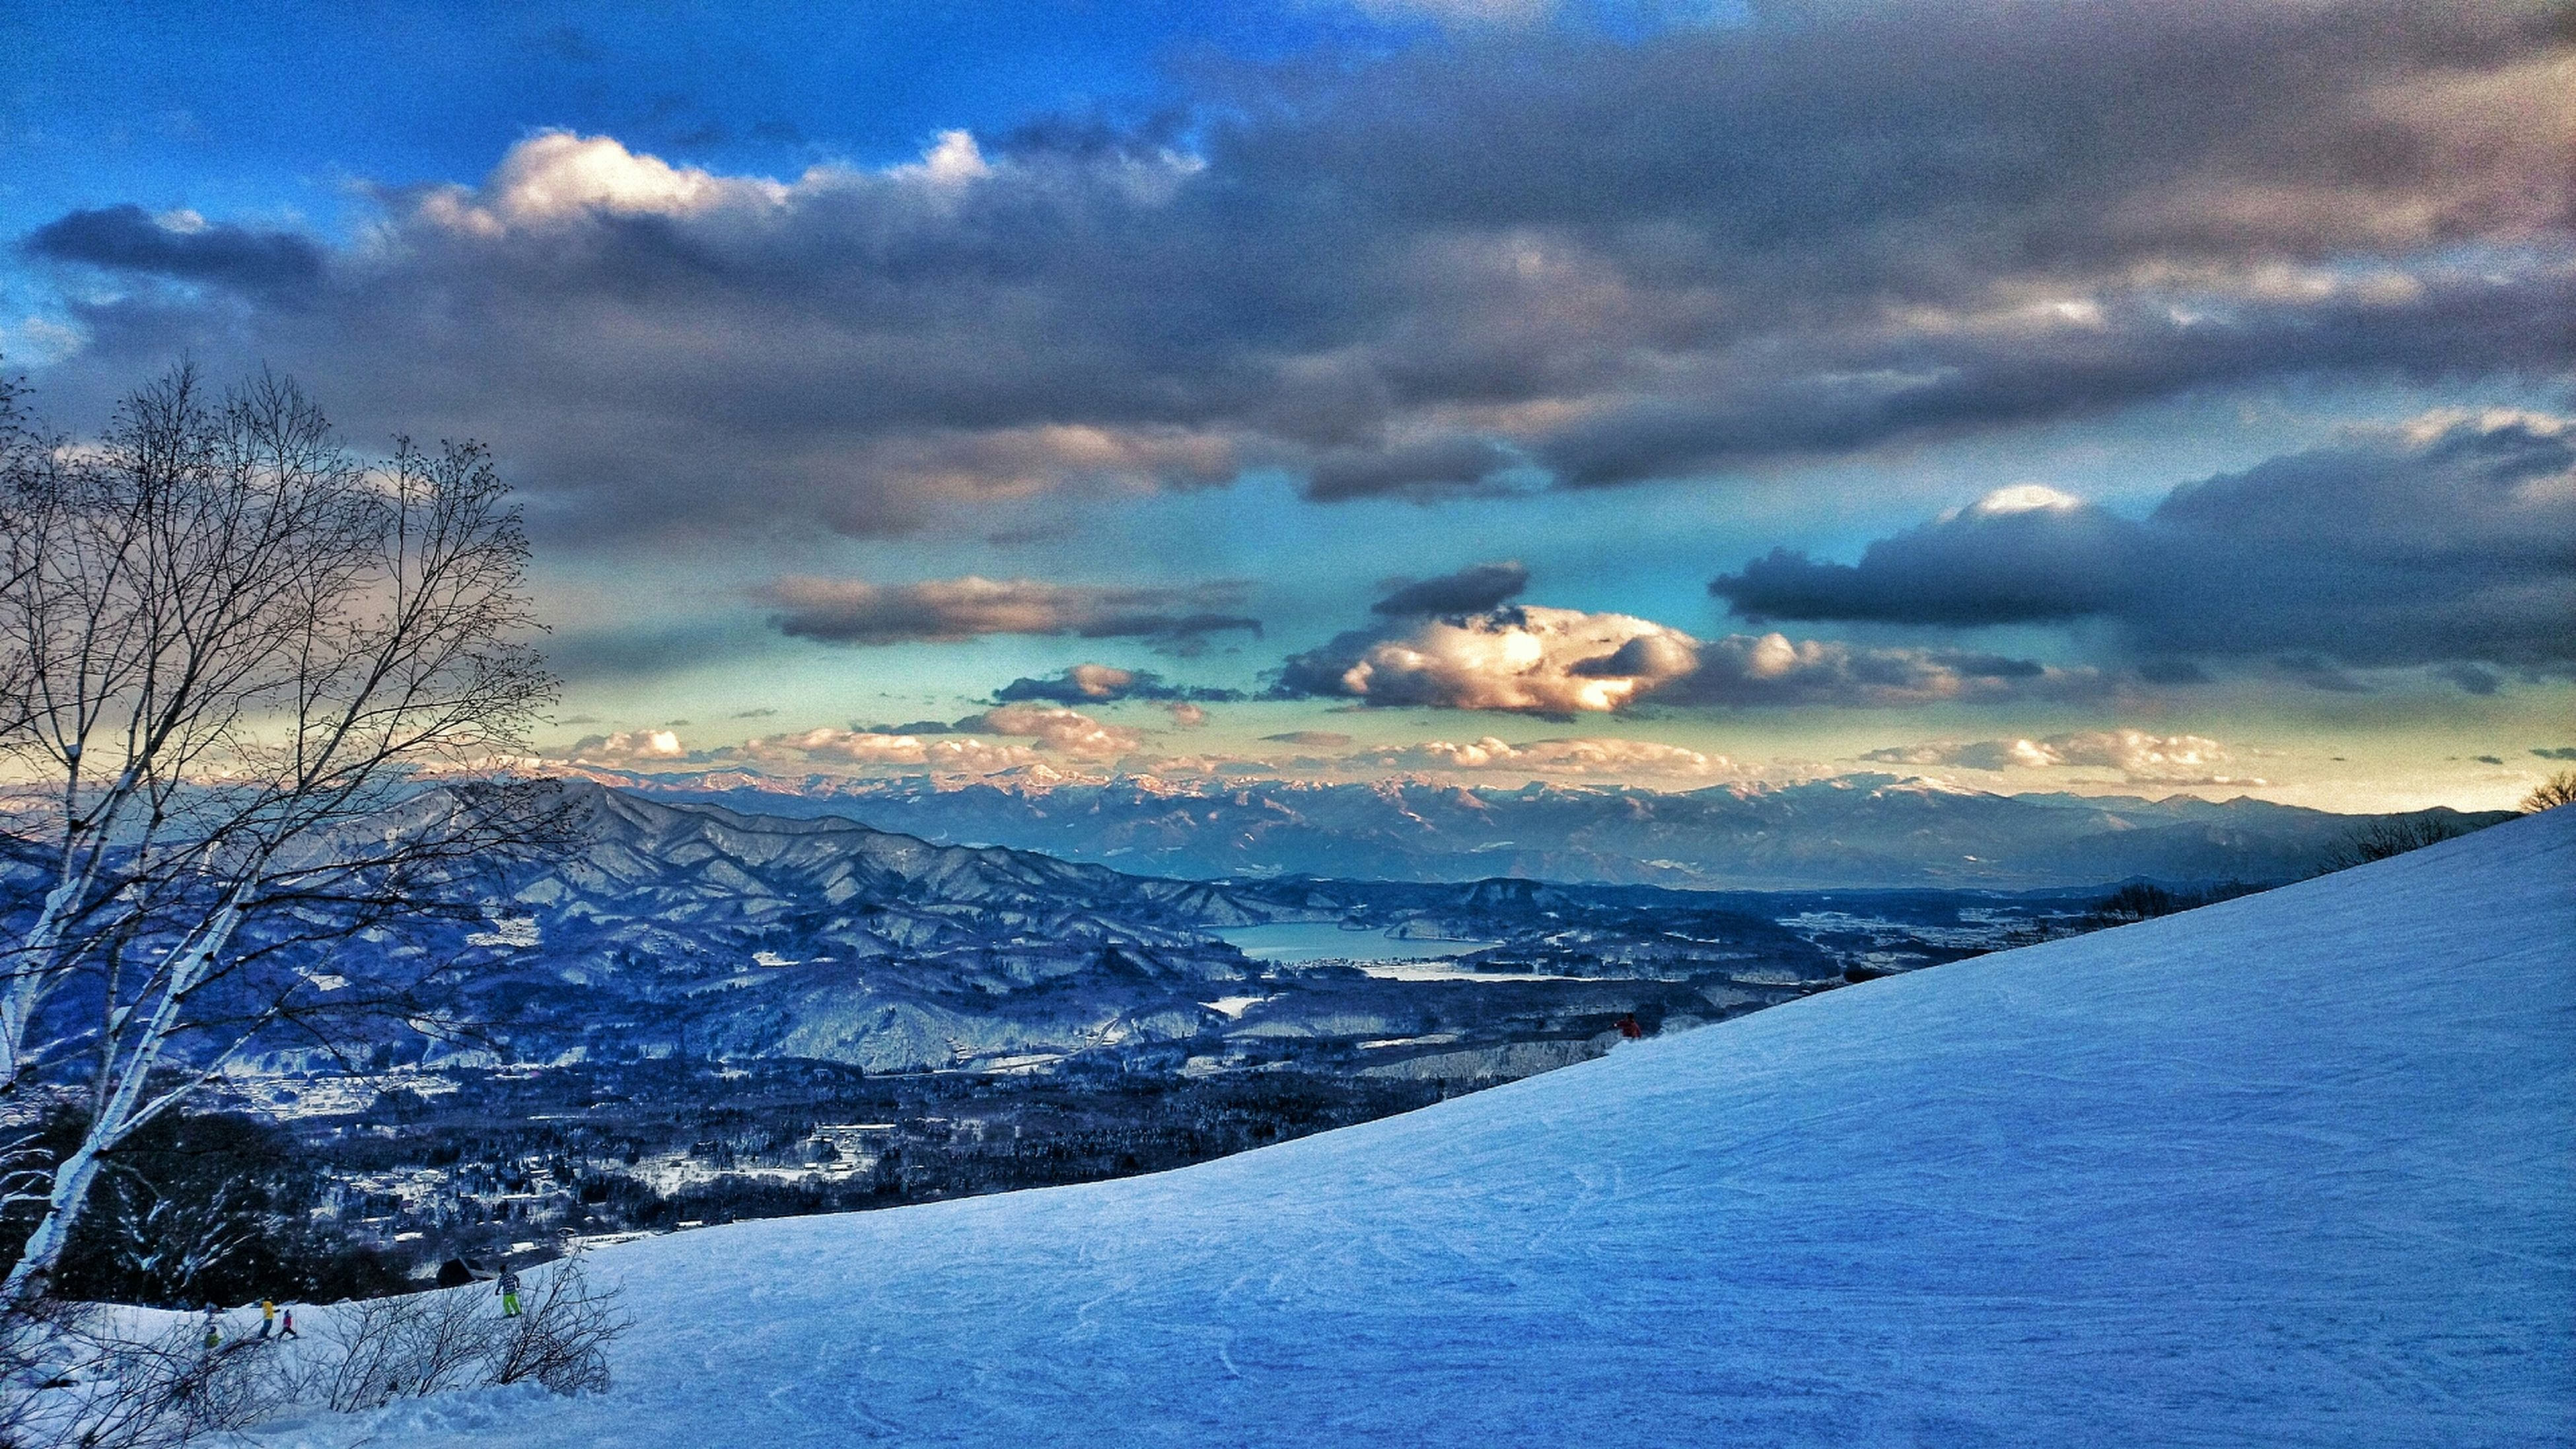 snow, cold temperature, winter, tranquil scene, sky, scenics, tranquility, beauty in nature, weather, cloud - sky, season, nature, water, cloudy, landscape, cloud, frozen, covering, sunset, idyllic